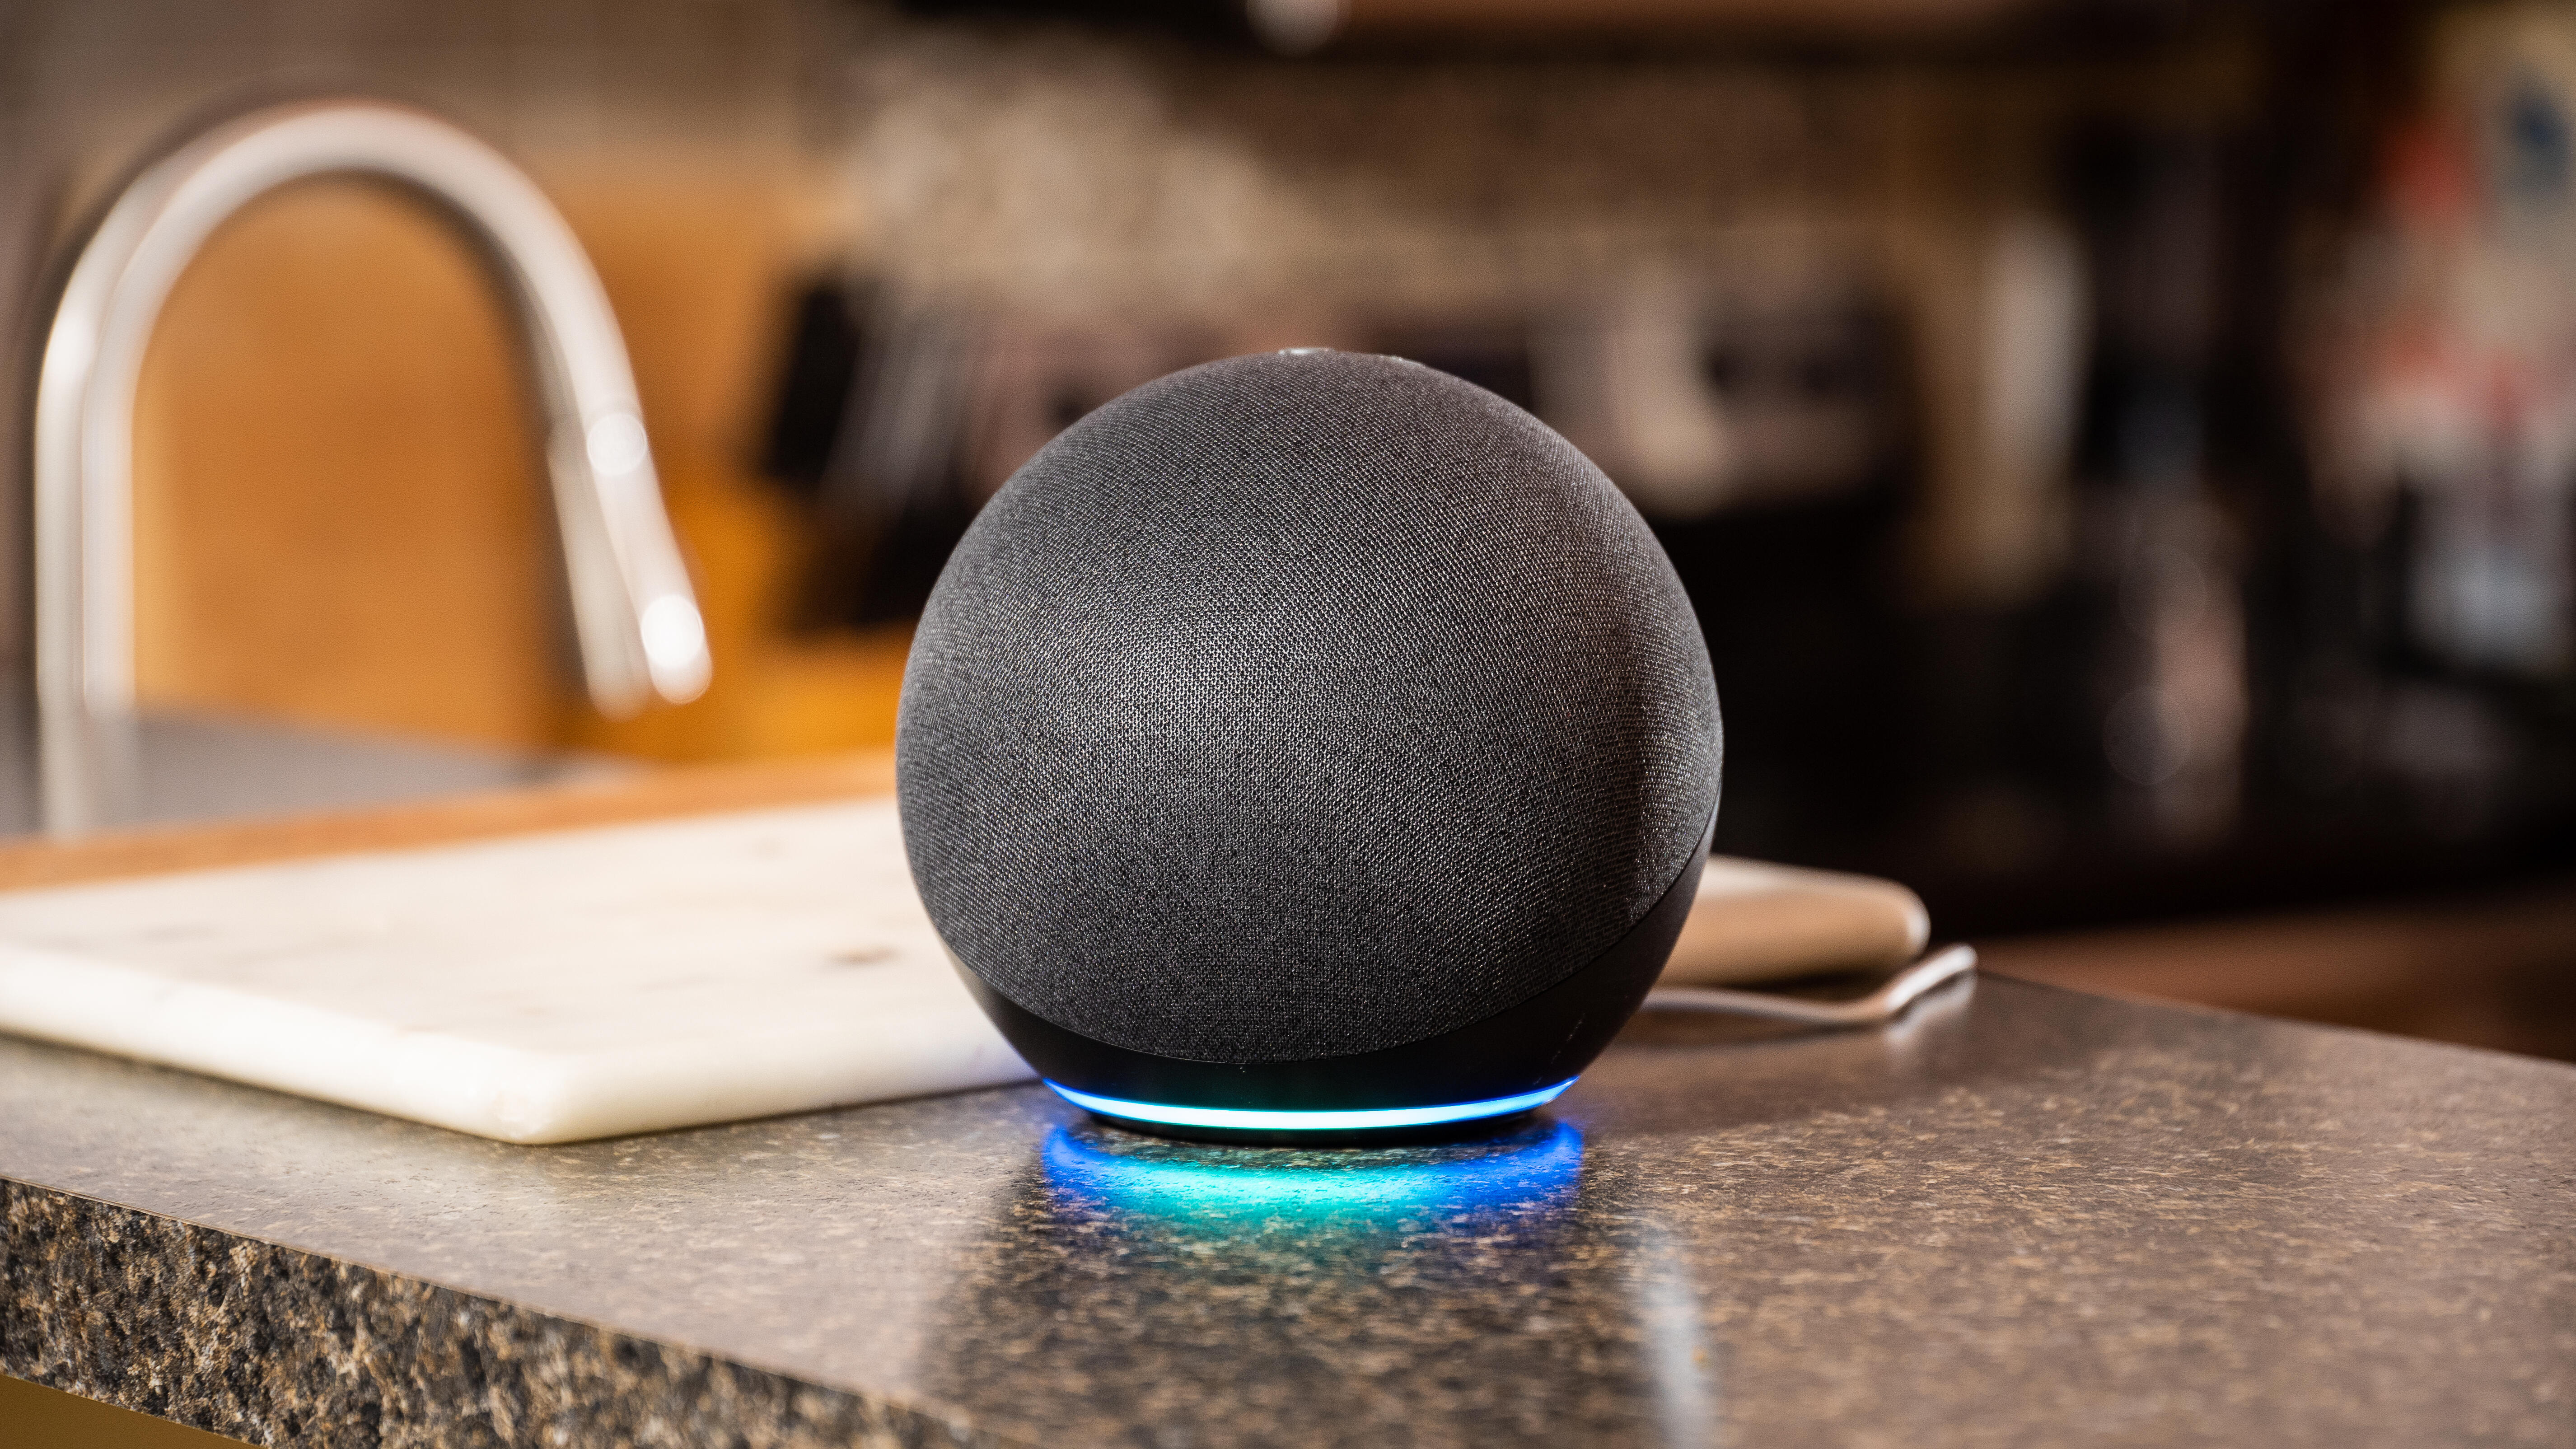 Video: Amazon's spherical smart speaker offers entertainment in the round